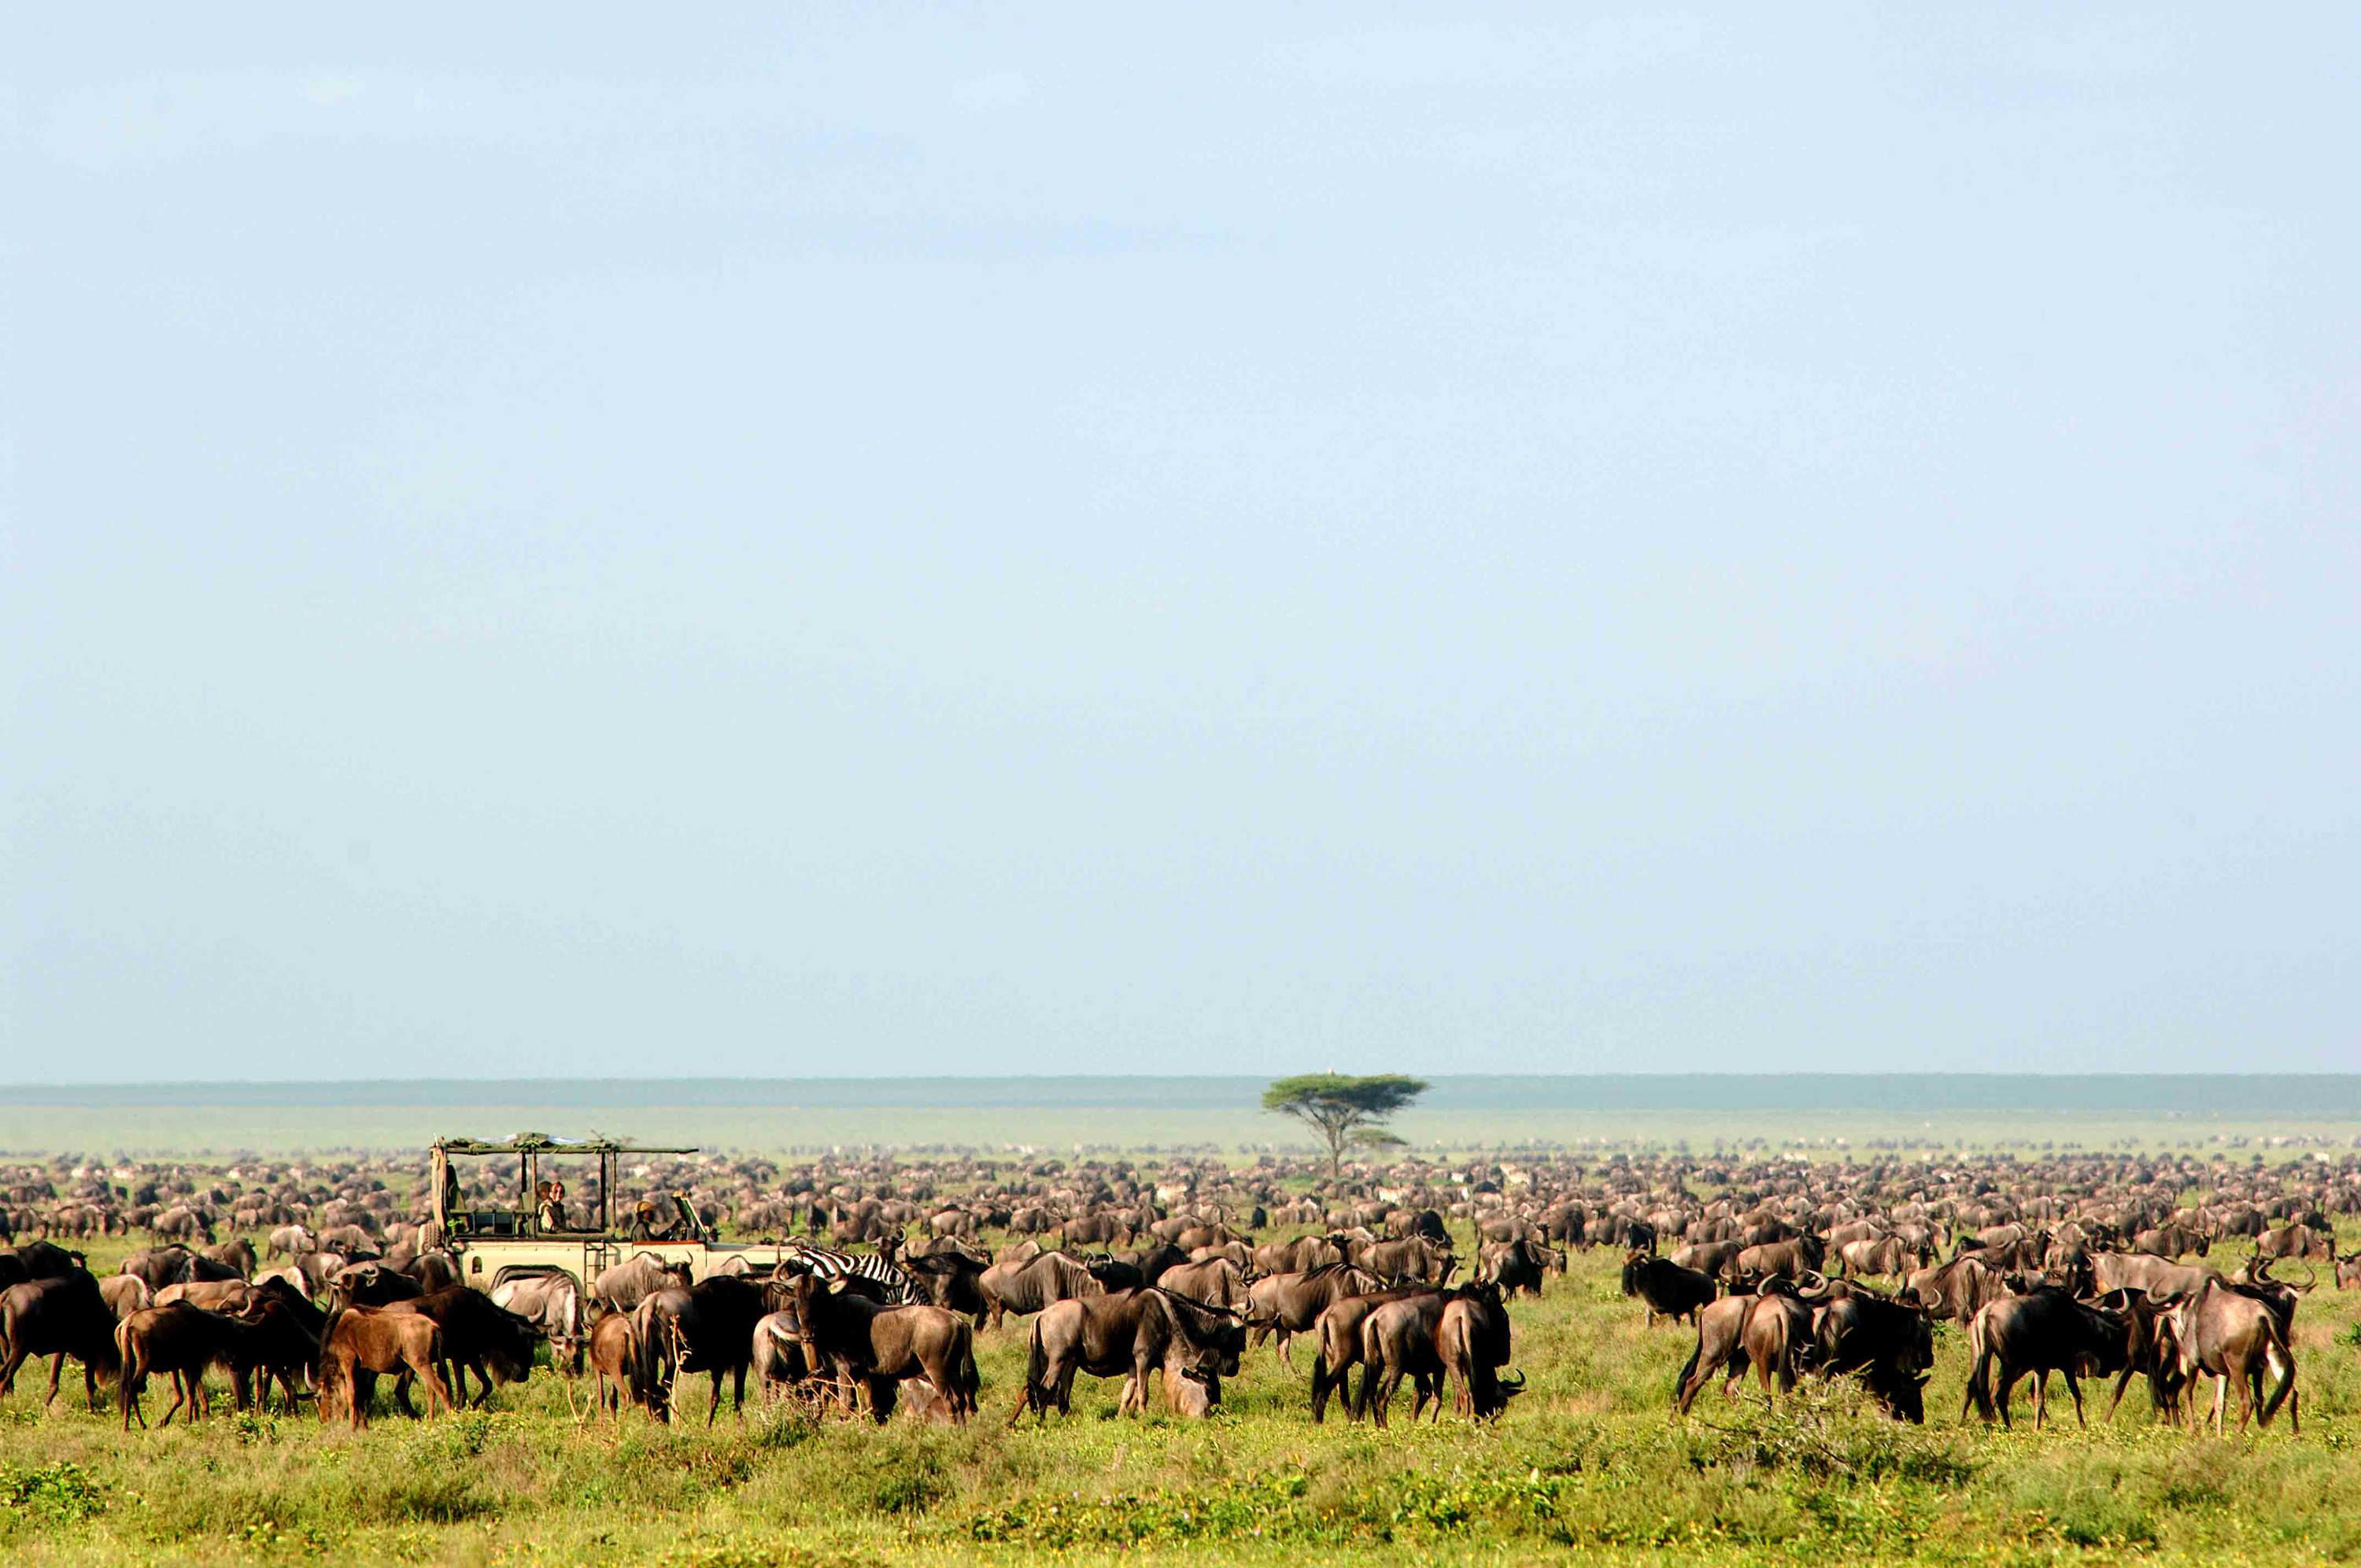 Buffaloes Safari trip Serengeti Tanzania bespoke holiday